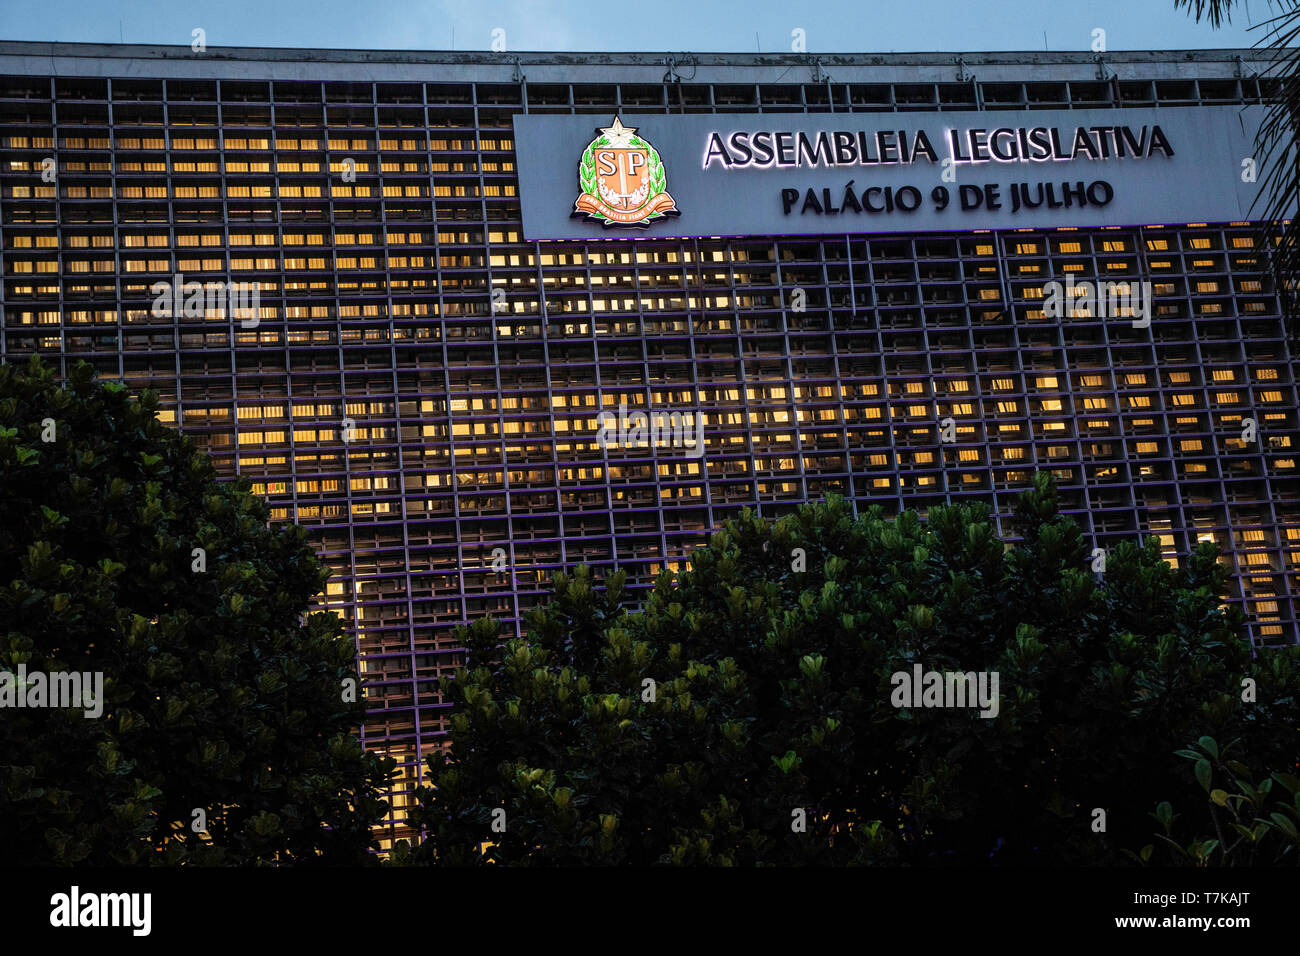 SÃO PAULO, SP - 07.05.2019: SESSÃO ALESP - Main facade of the Legislative Assembly of São Paulo, in the south zone of the city, on the afternoon of this Tuesday (01). PL 001, which deals with the privatization of public companies, is still on the agenda. (Photo: Bruno Rocha/Fotoarena) - Stock Image